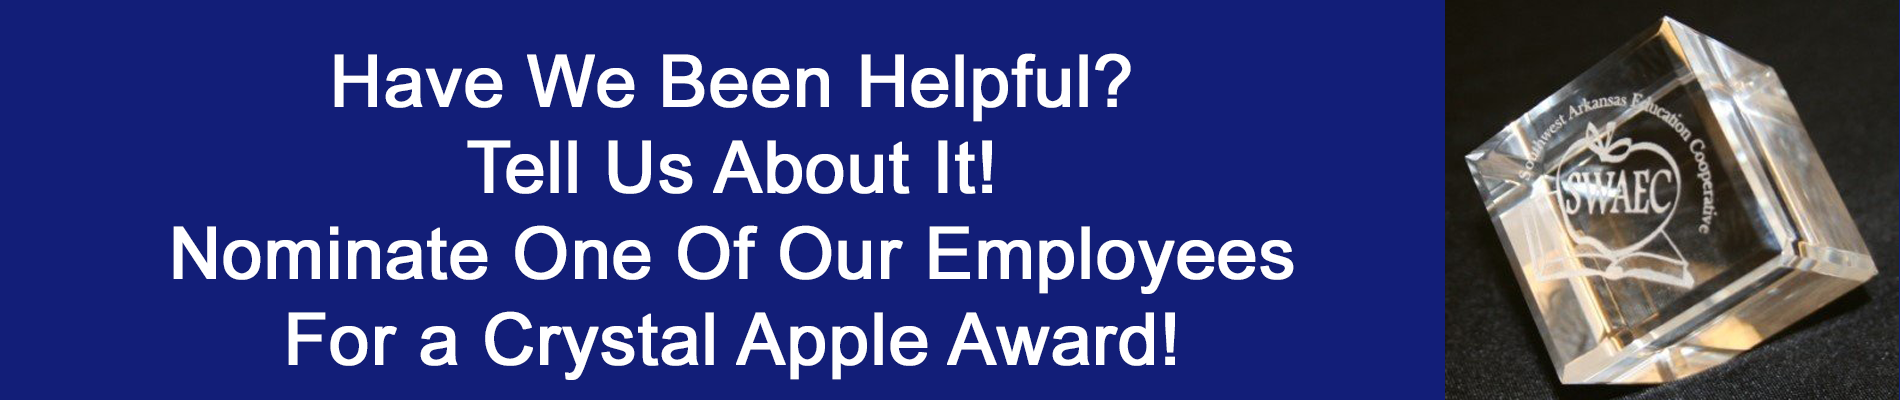 help us reward an employee today!